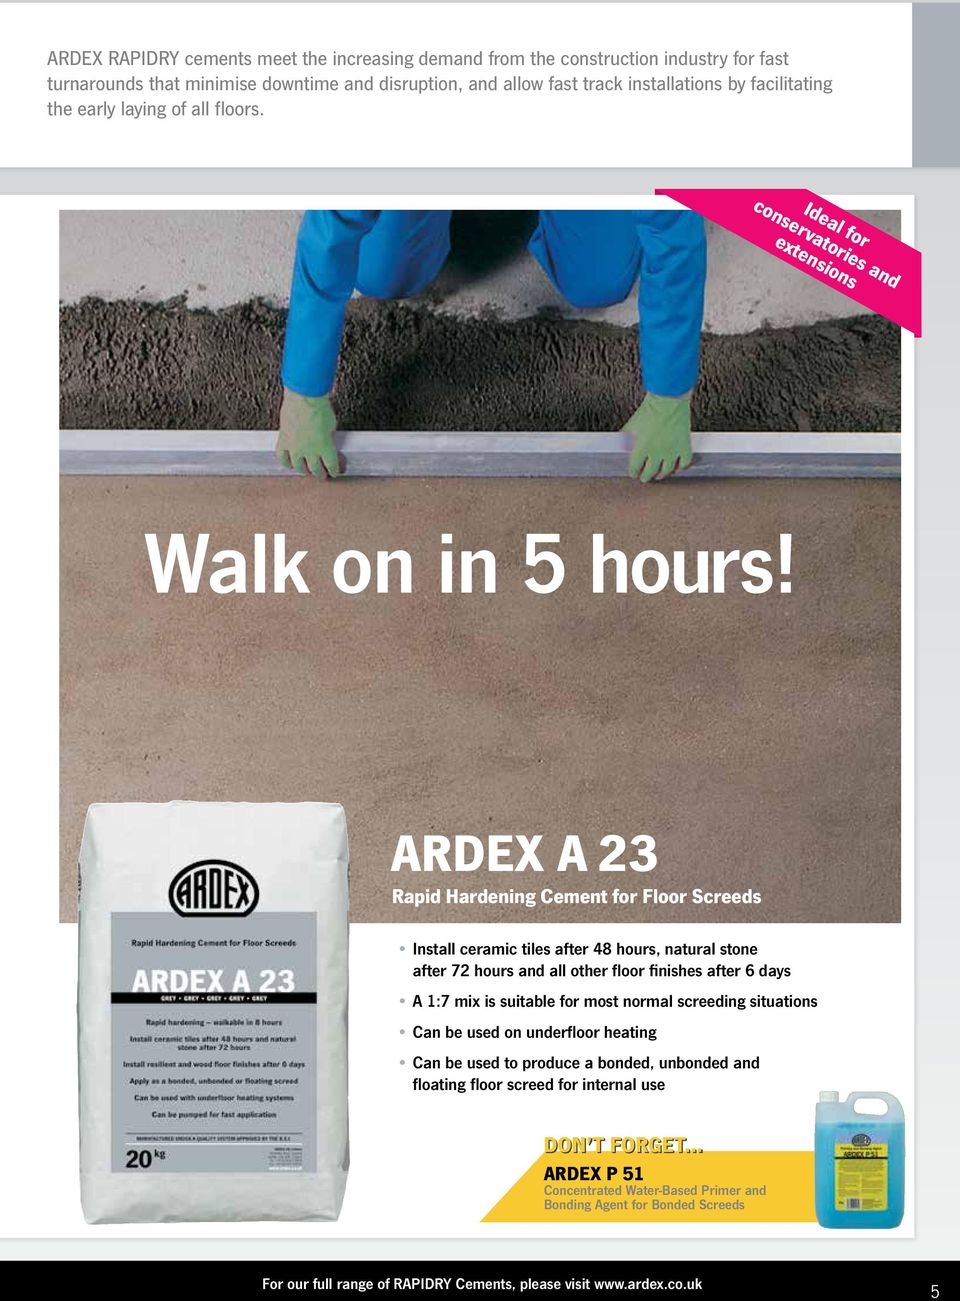 ARDEX A 23 Rapid Hardening Cement for Floor Screeds Install ceramic tiles after 48 hours, natural stone after 72 hours and all other floor finishes after 6 days A 1:7 mix is suitable for most